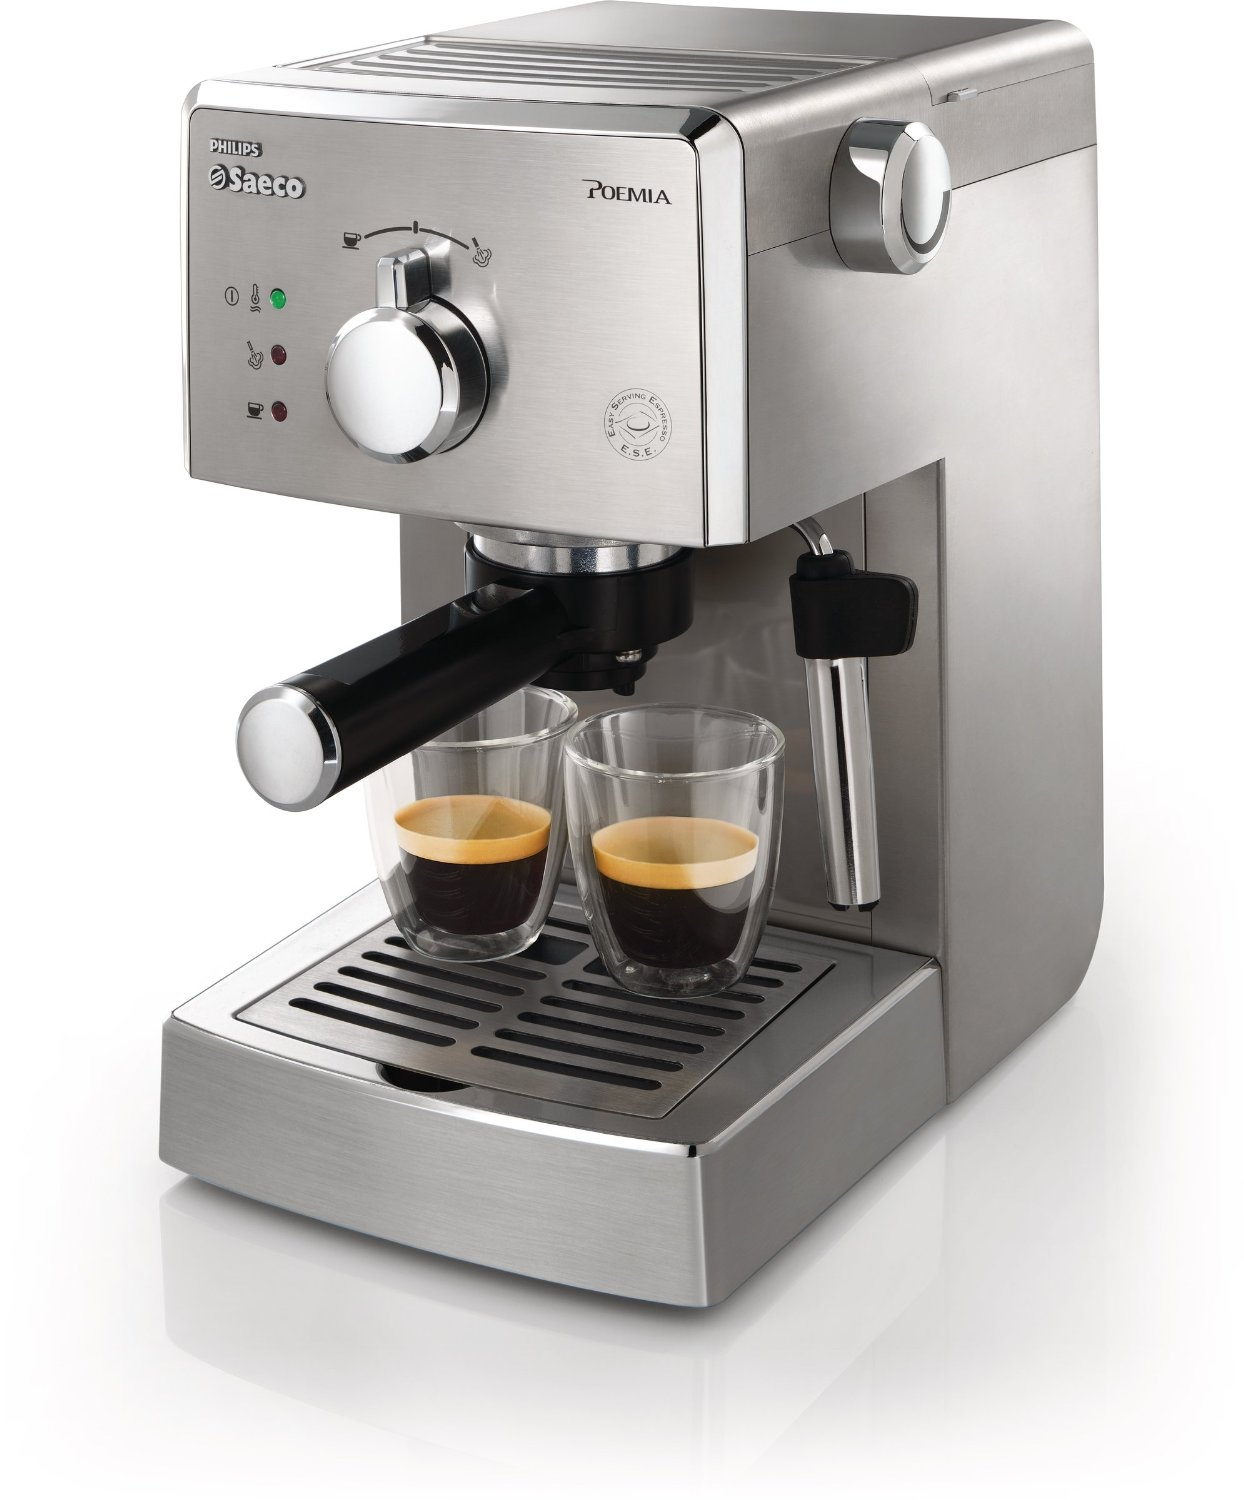 Best Cappuccino Maker We Reviewed Top Rated Coffee Makers